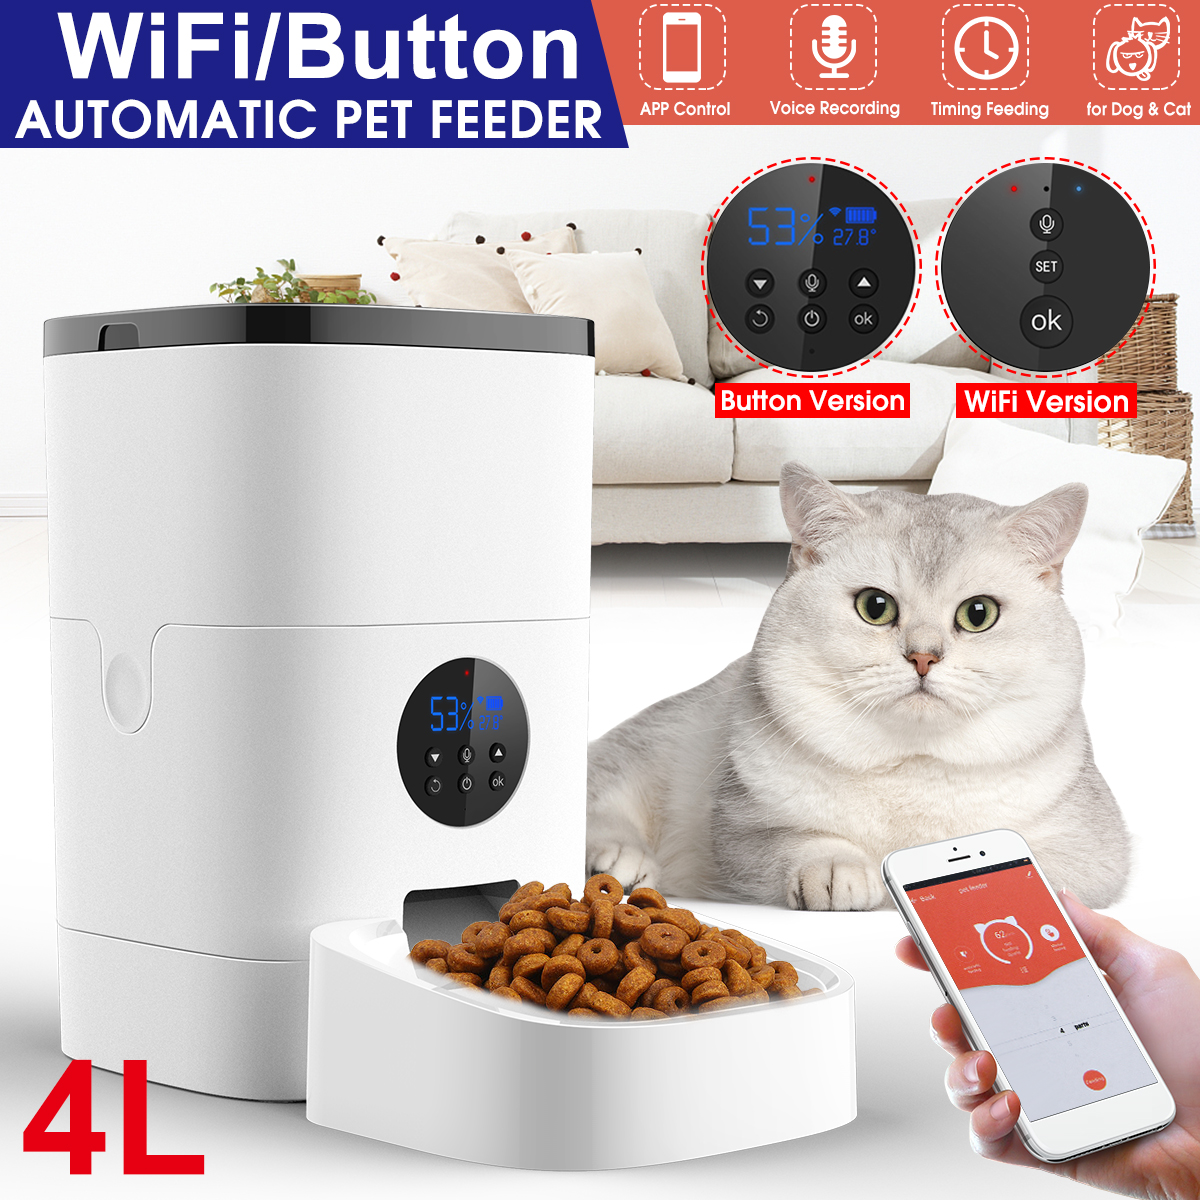 App Control Smart Pet Feeder Automatic Cat Dog Food Dispenser Support Voice Recorder Timer Programablefor Dogs Cats Small Animals Christmas Gift Walmart Com Walmart Com